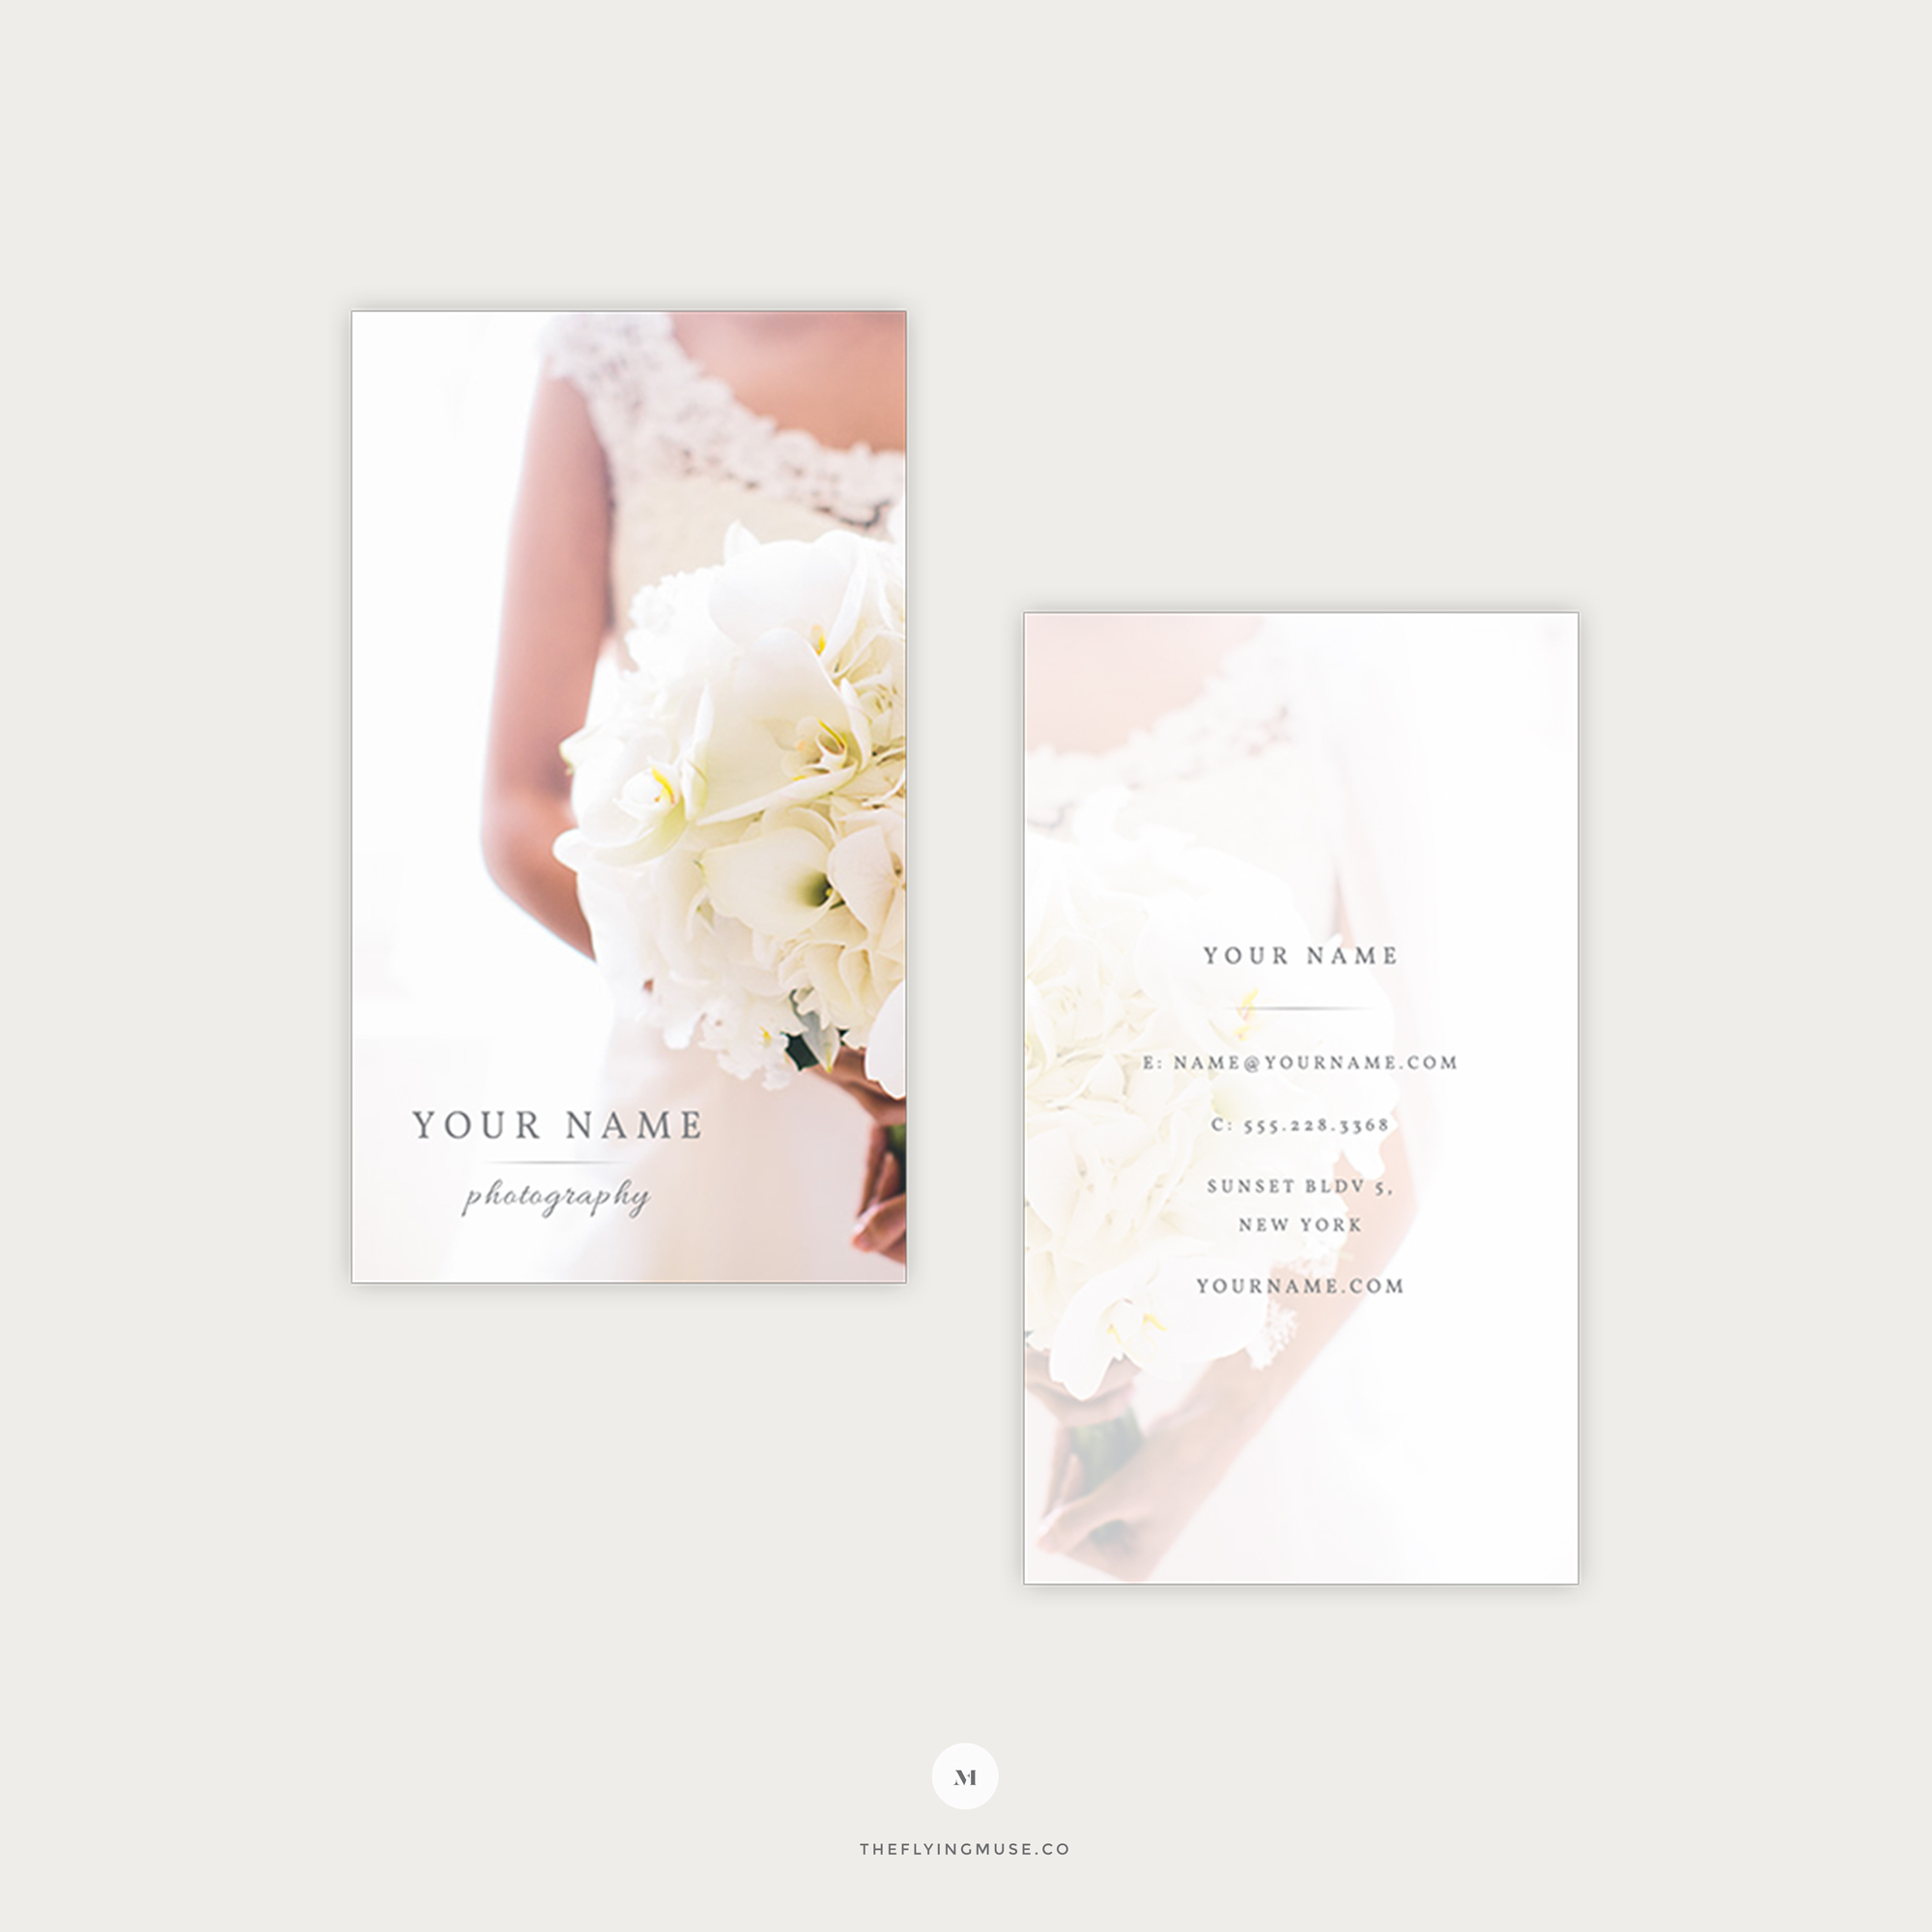 elegant vertical wedding photography business cards - Photography Business Cards